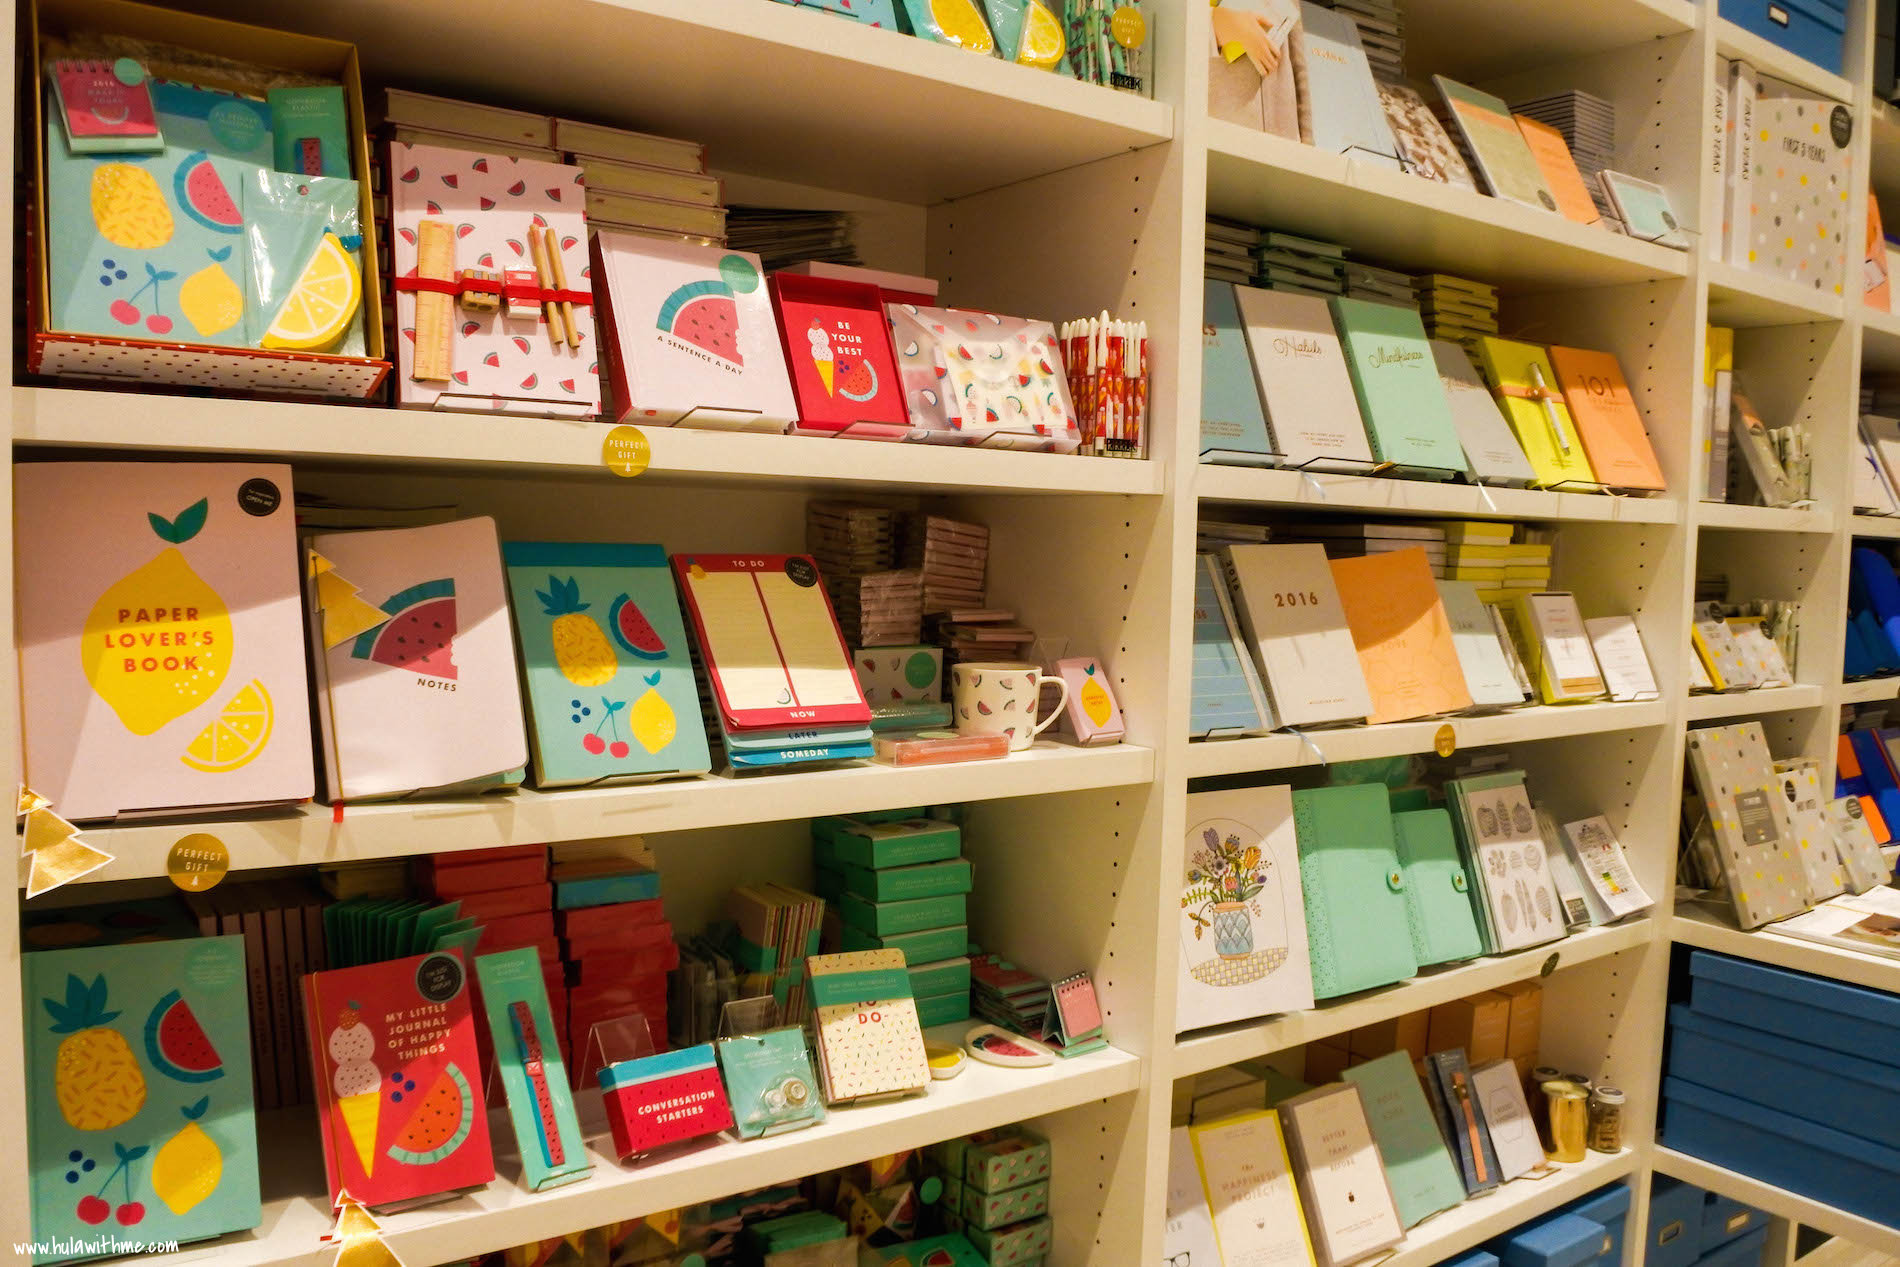 Kikki.K Stationery: Each signature collection is neatly displayed on the shelves.